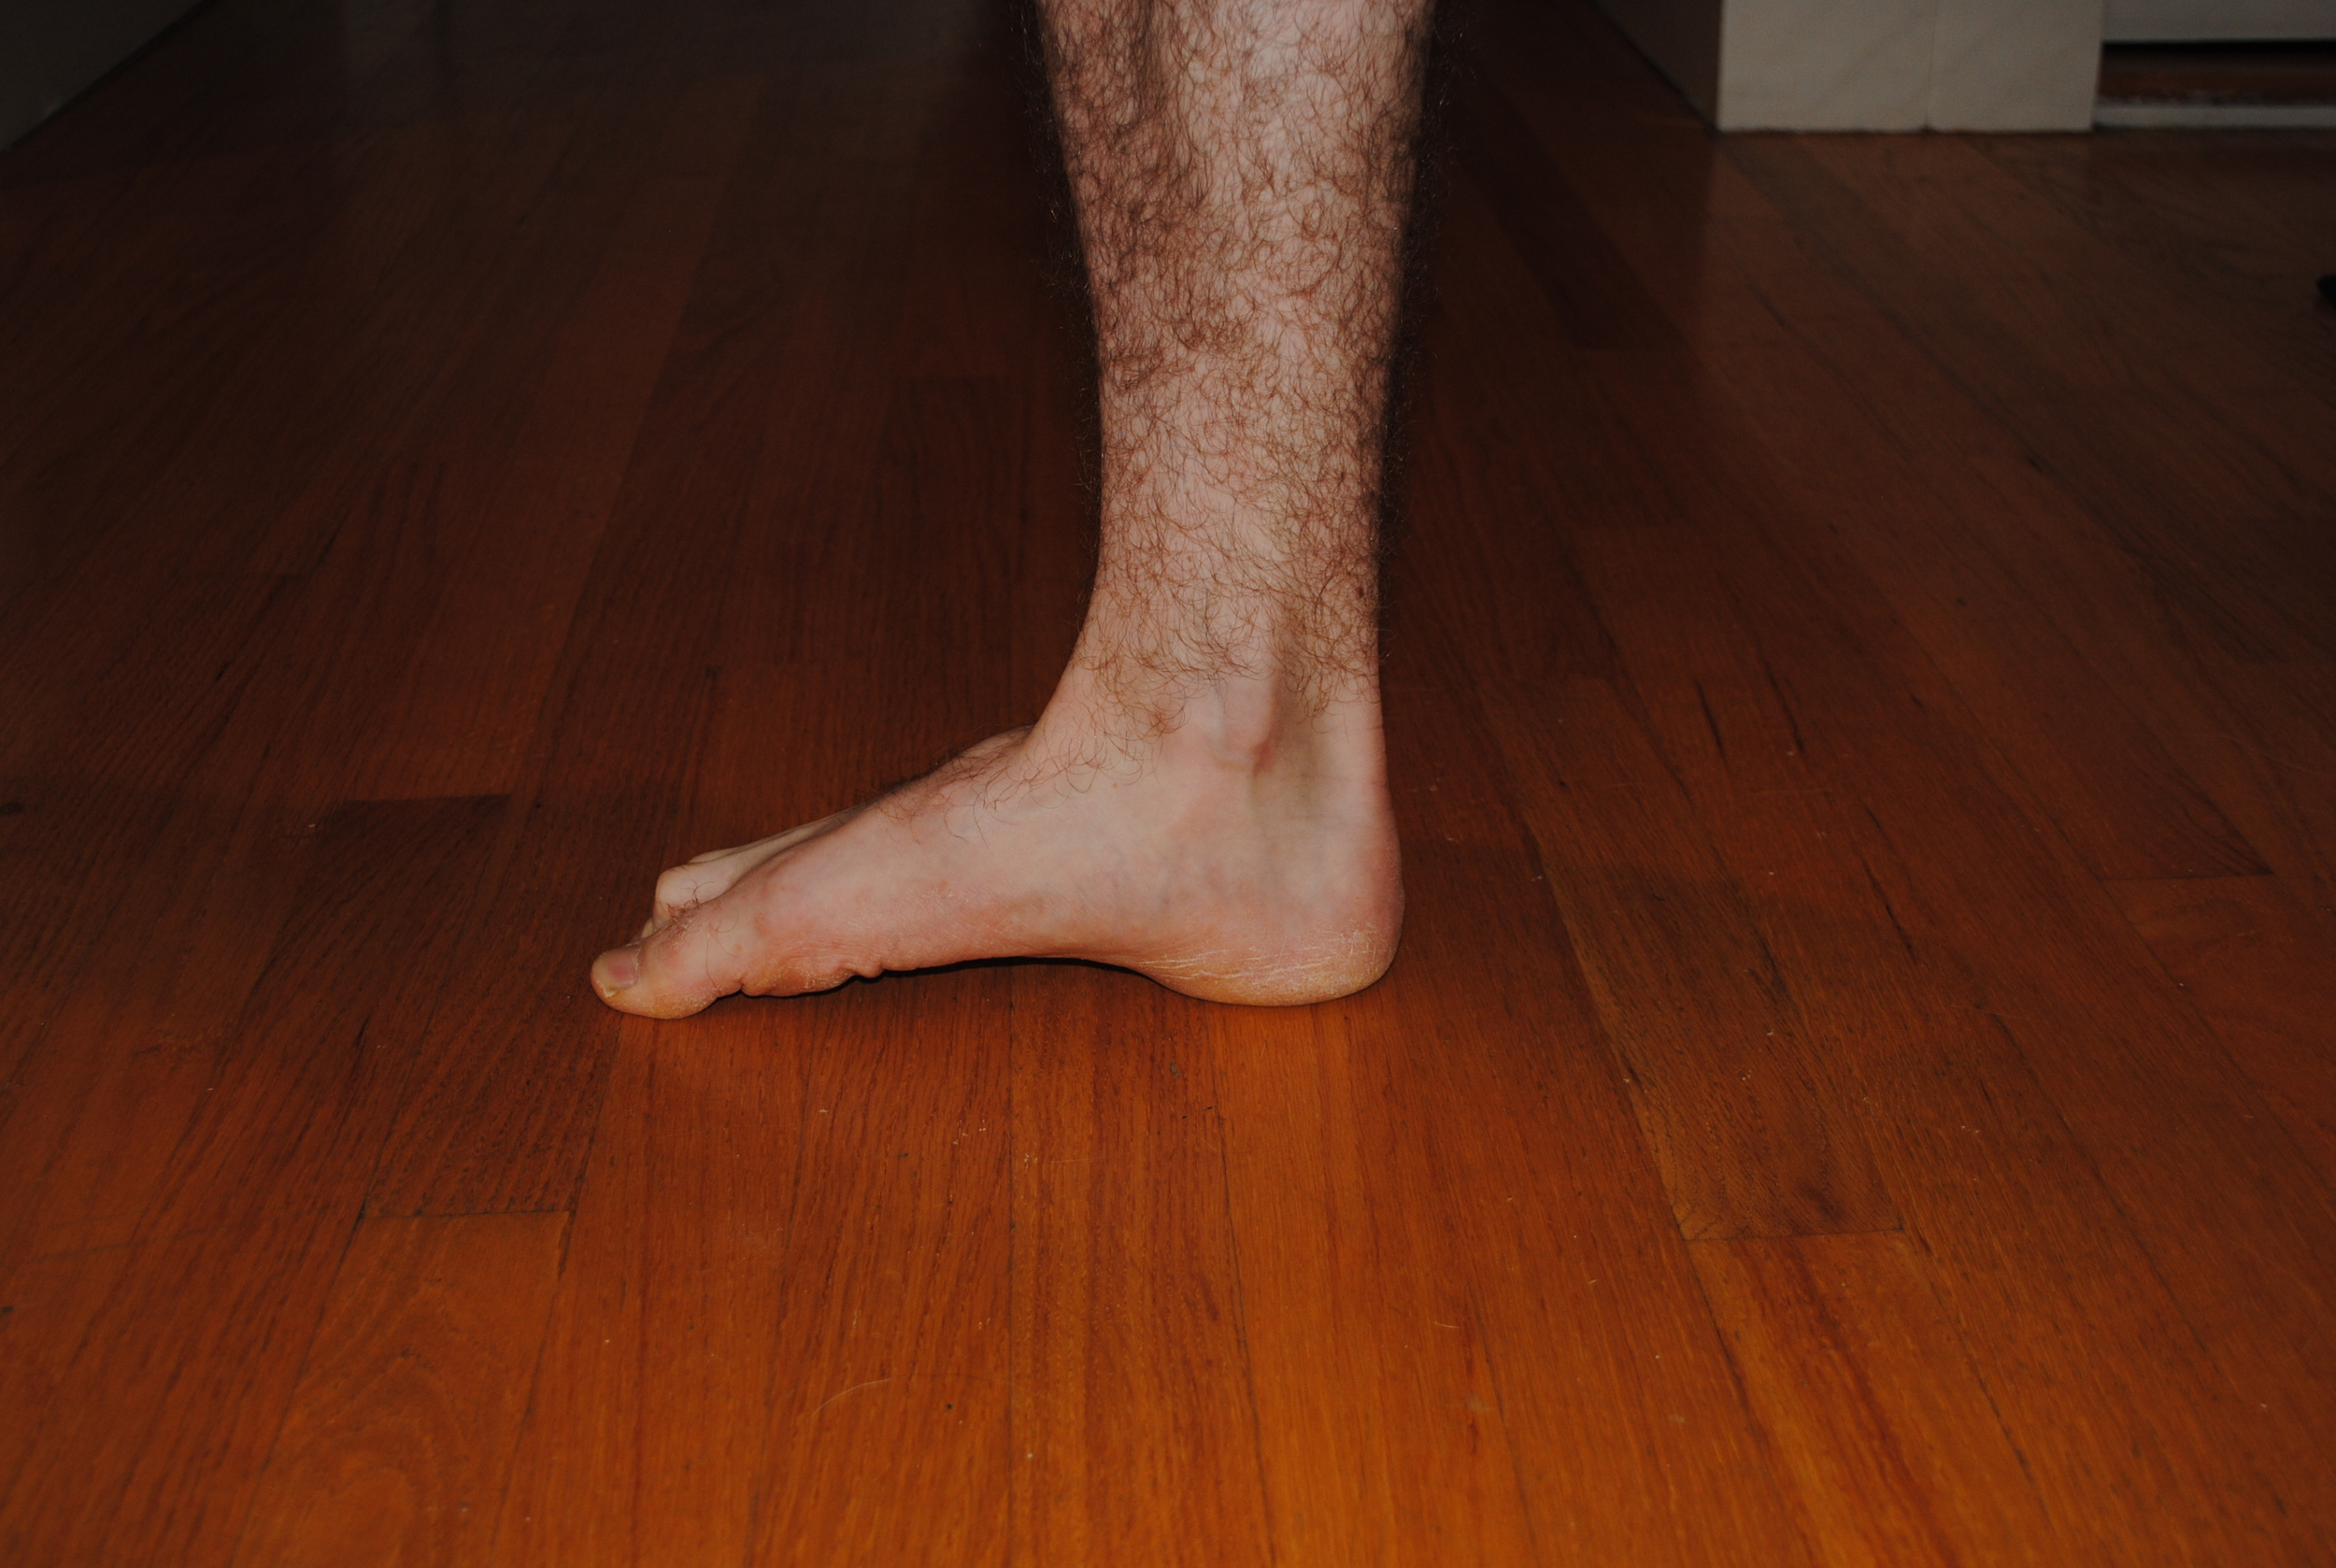 Press down with your toes while raising the arch of your foot.